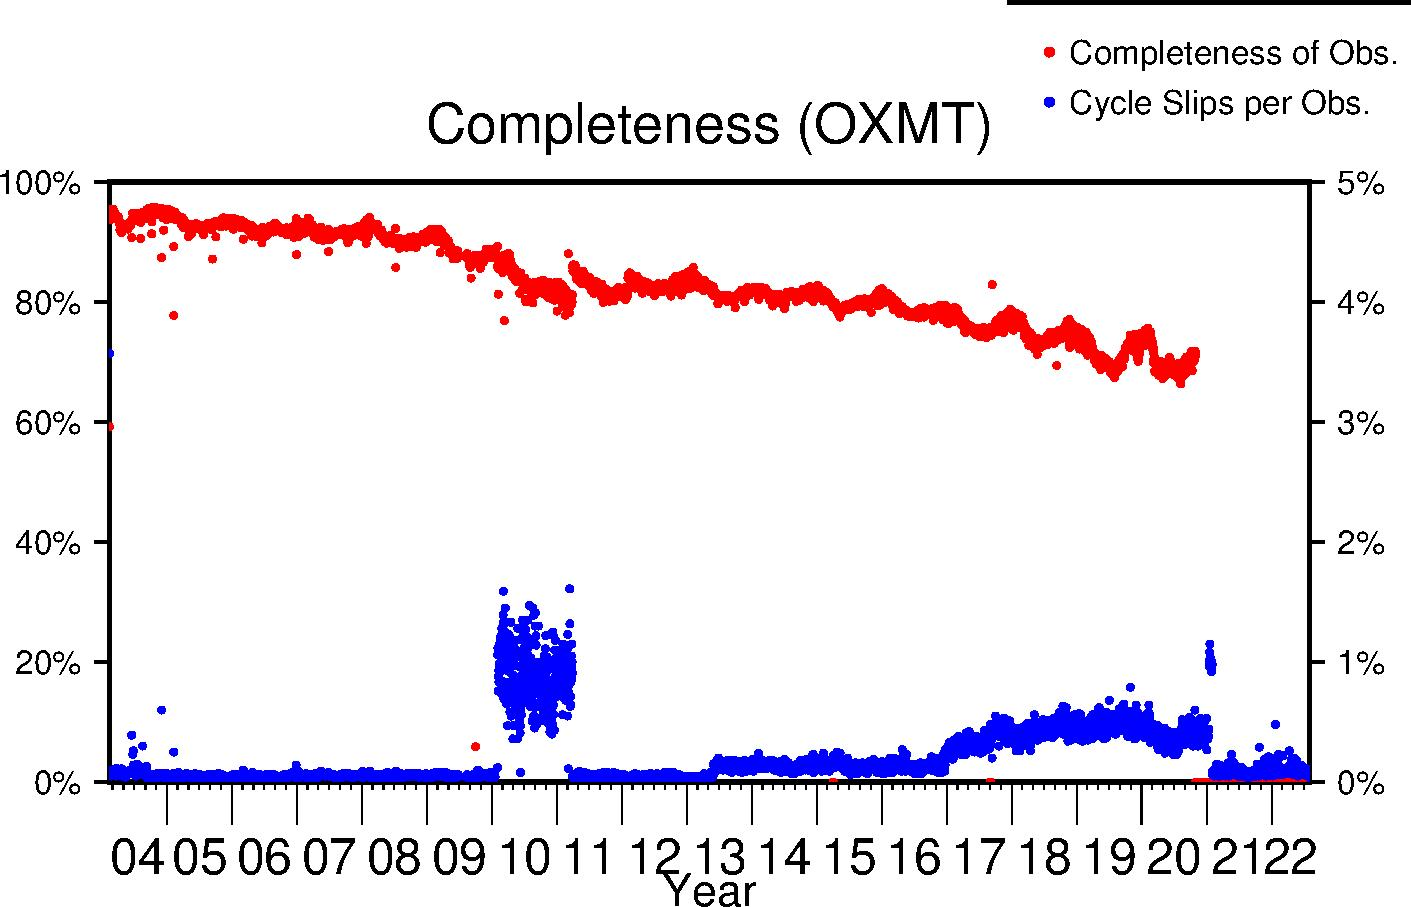 OXMT completeness lifetime